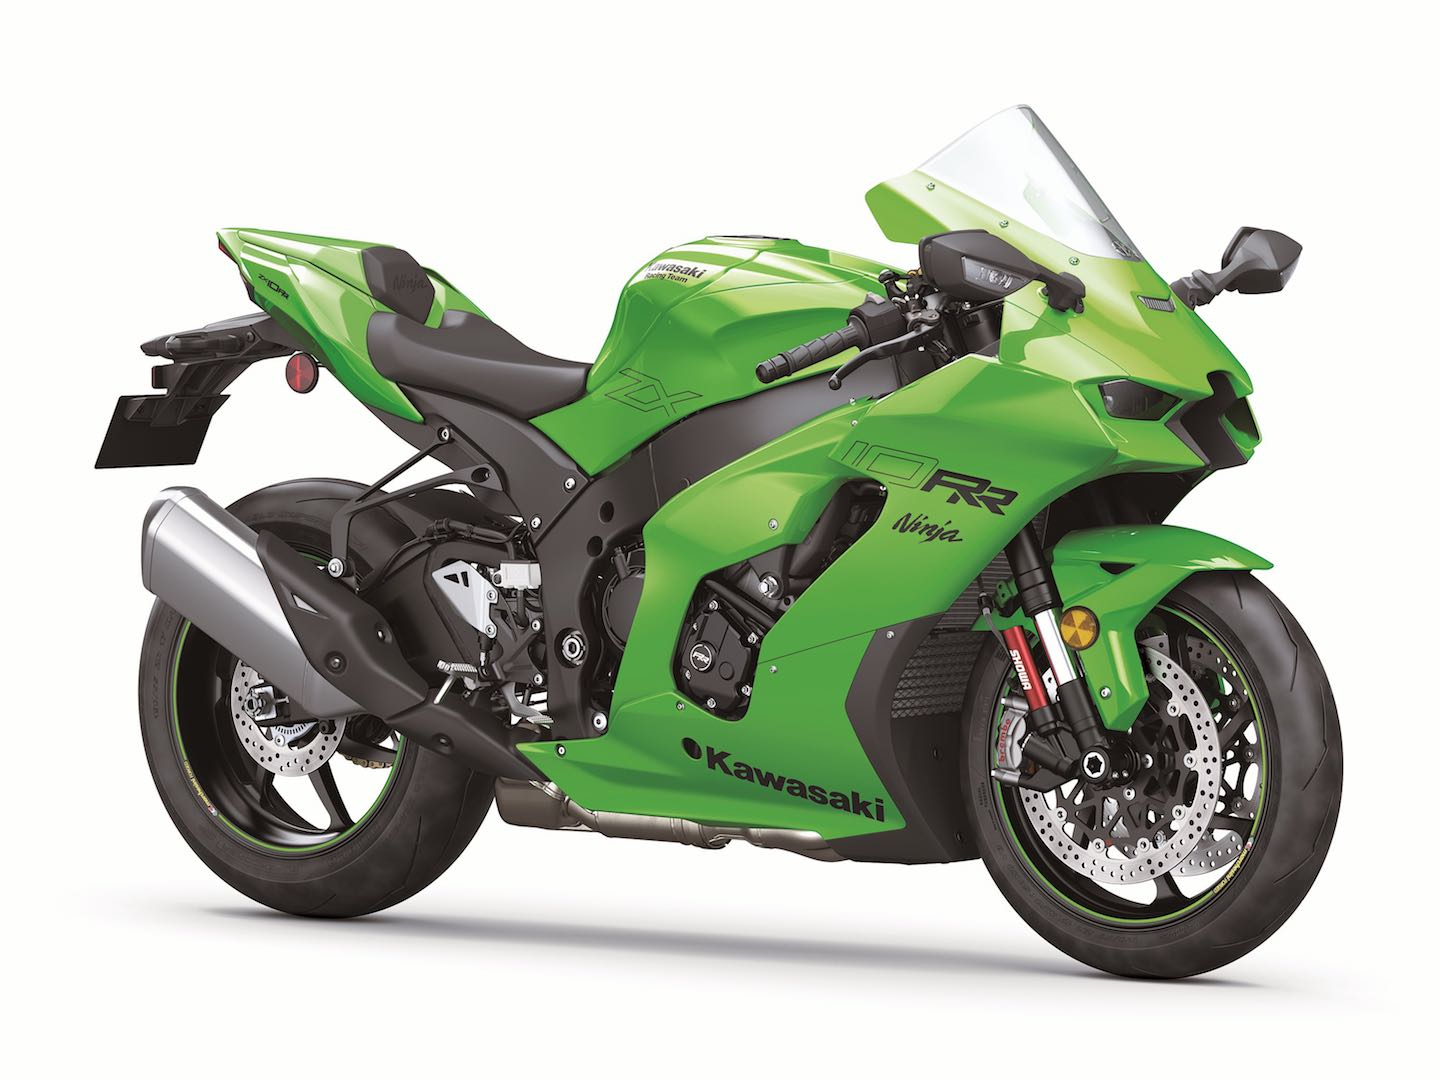 2021 Kawasaki Ninja ZX-10R and Ninja ZX-10RR Revealed - Specs, Options & Pricing Details